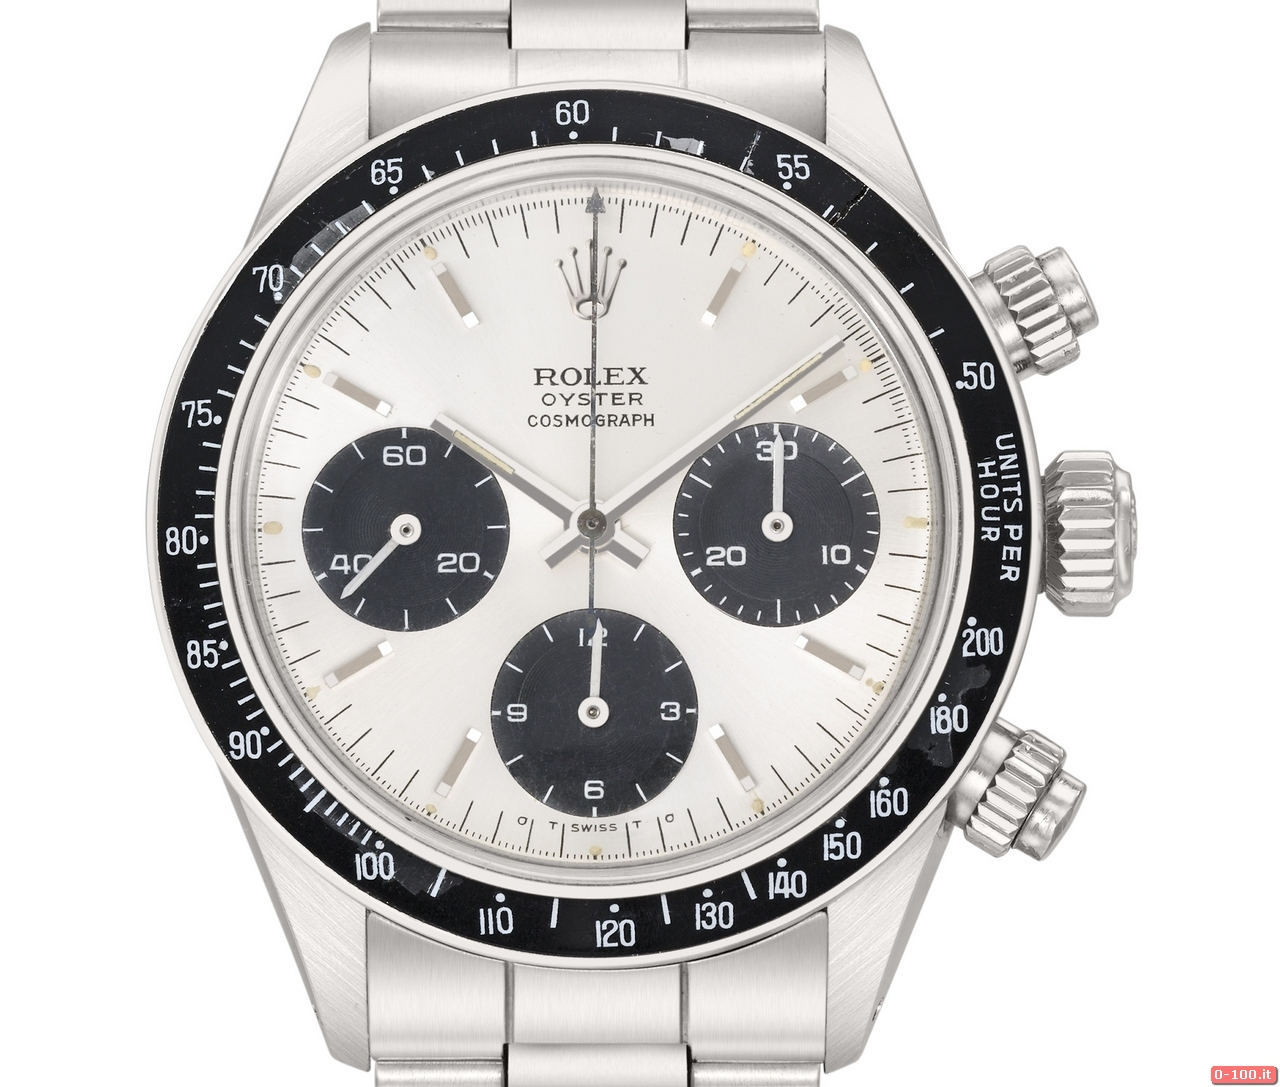 Rolex_FAP Military Oyster Cosmograph_Christies20-100